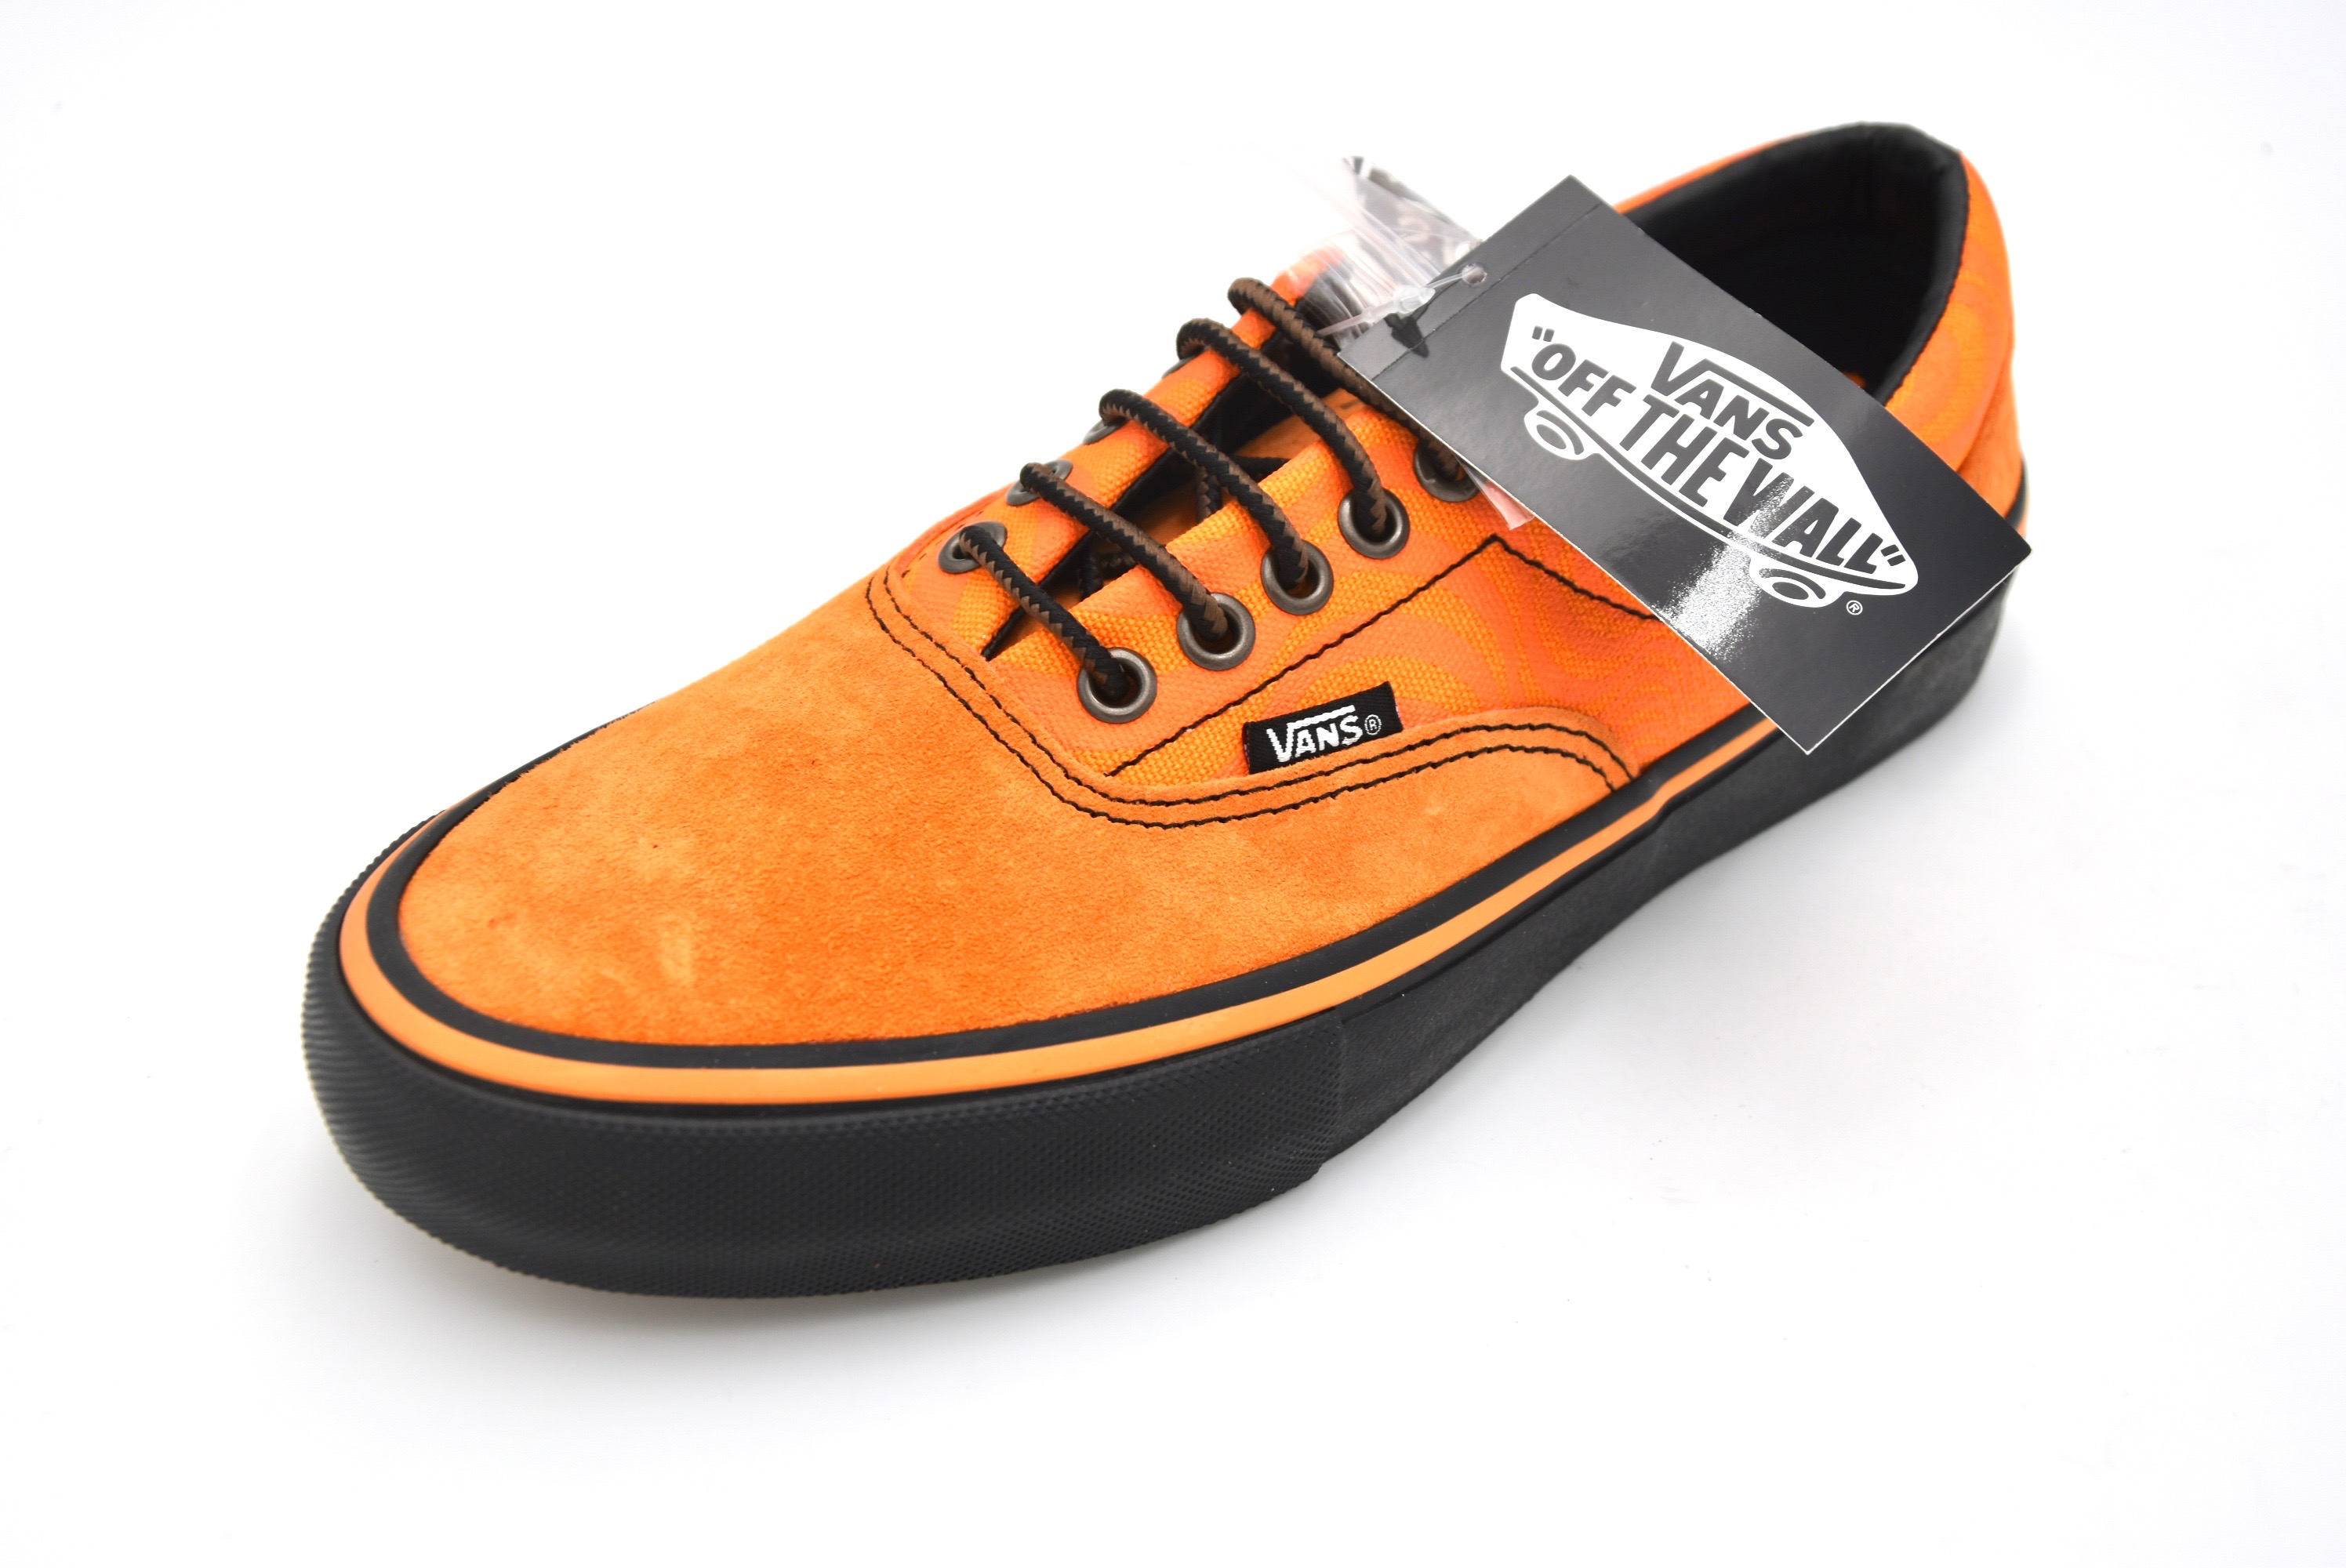 4fba51684518 Details about VANS MAN FREE TIME CASUAL SNEAKER SHOES CODE VN000VFBQ30 ERA  PRO SPITFIRE